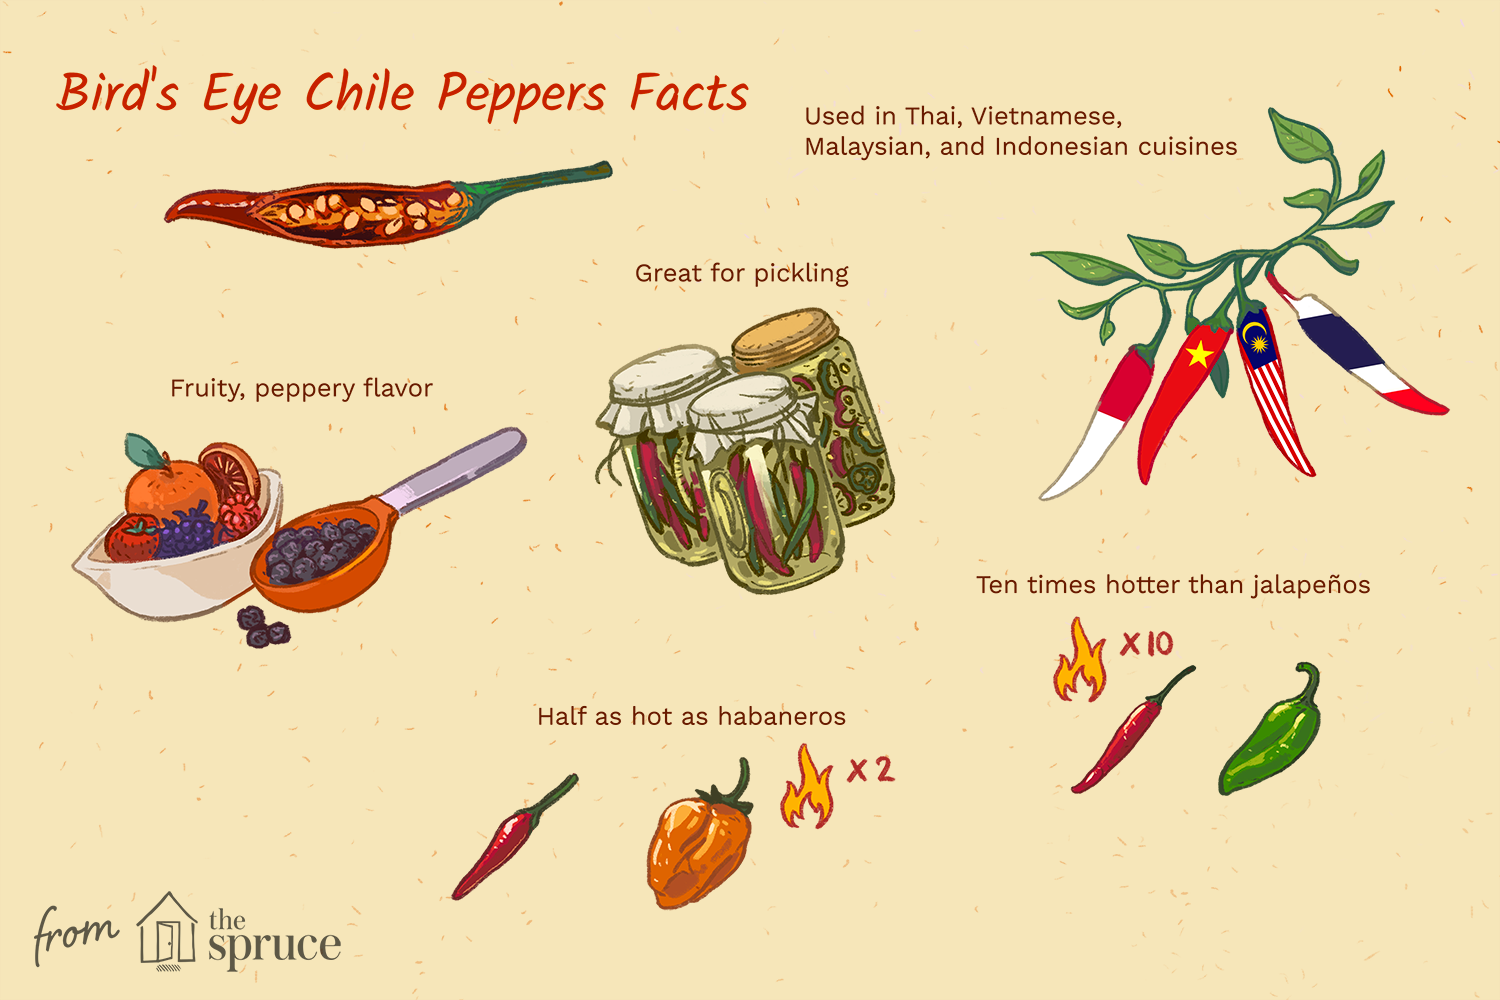 what are bird's eye chiles